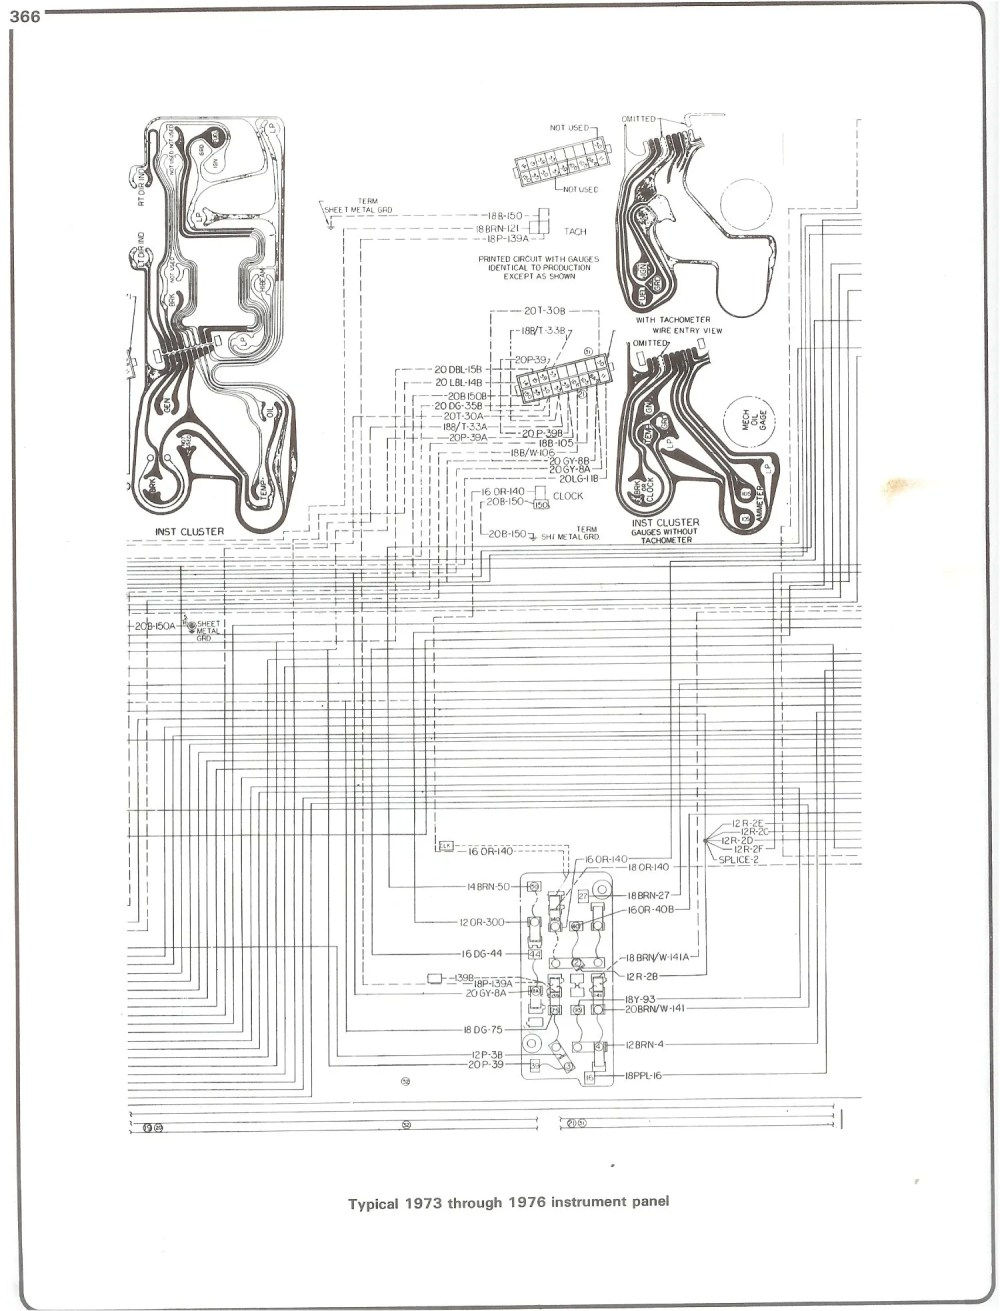 medium resolution of complete 73 87 wiring diagrams 2012 gmc sierra fuse box diagram 1985 gmc sierra fuse box diagram